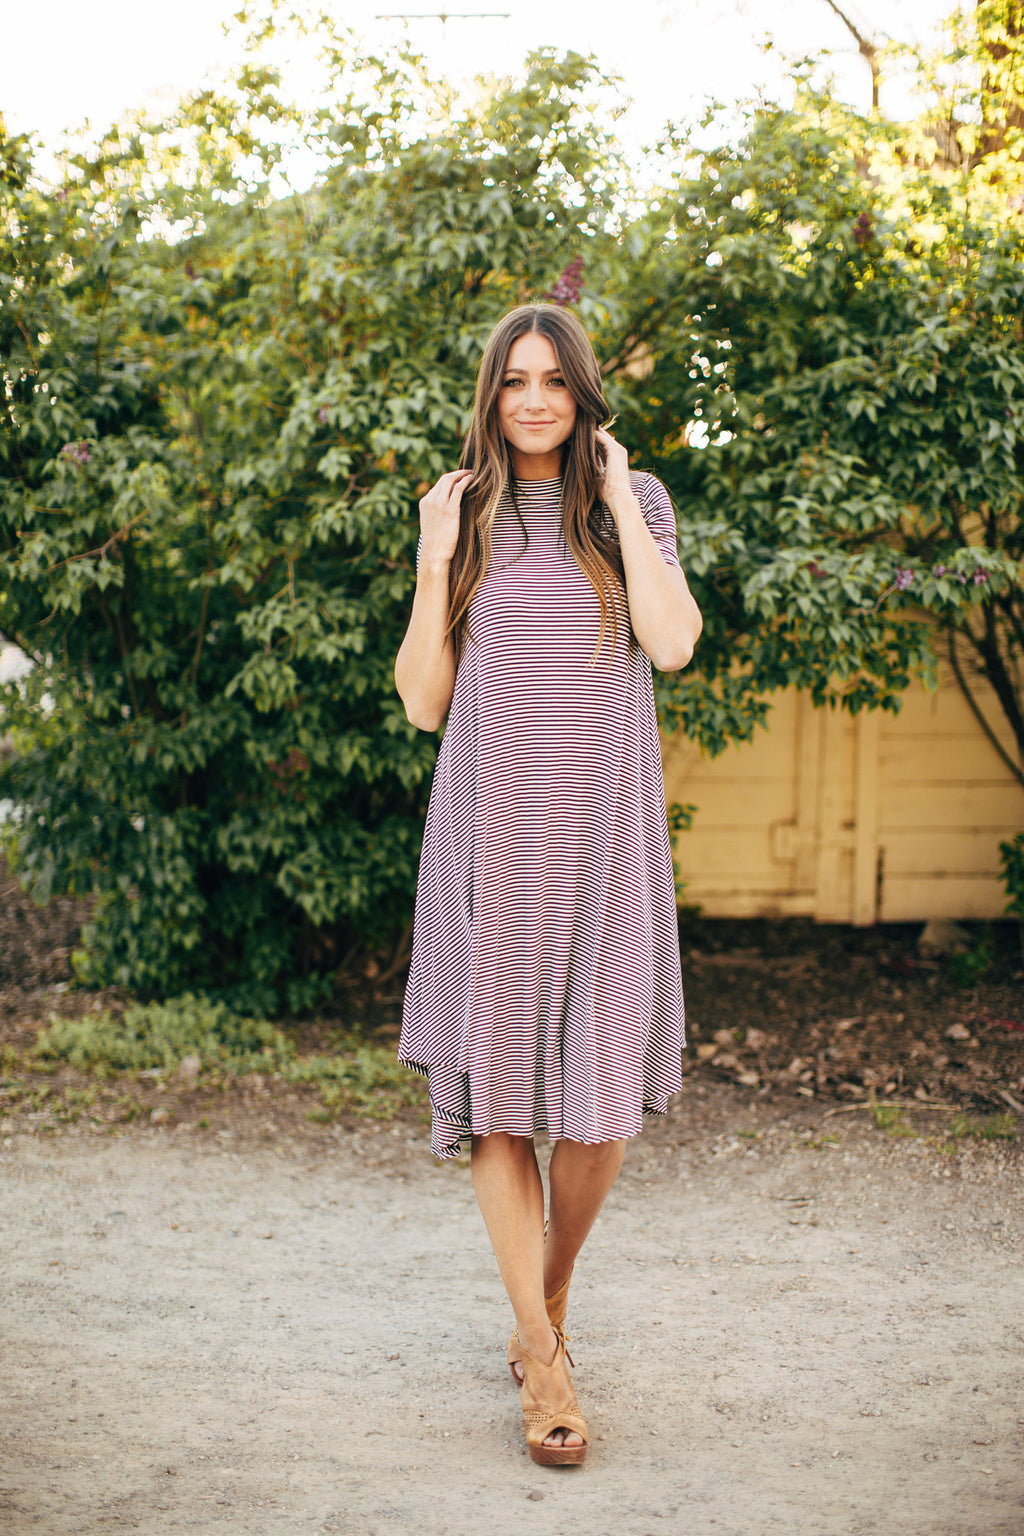 How To: Style the Simple Spring Dress